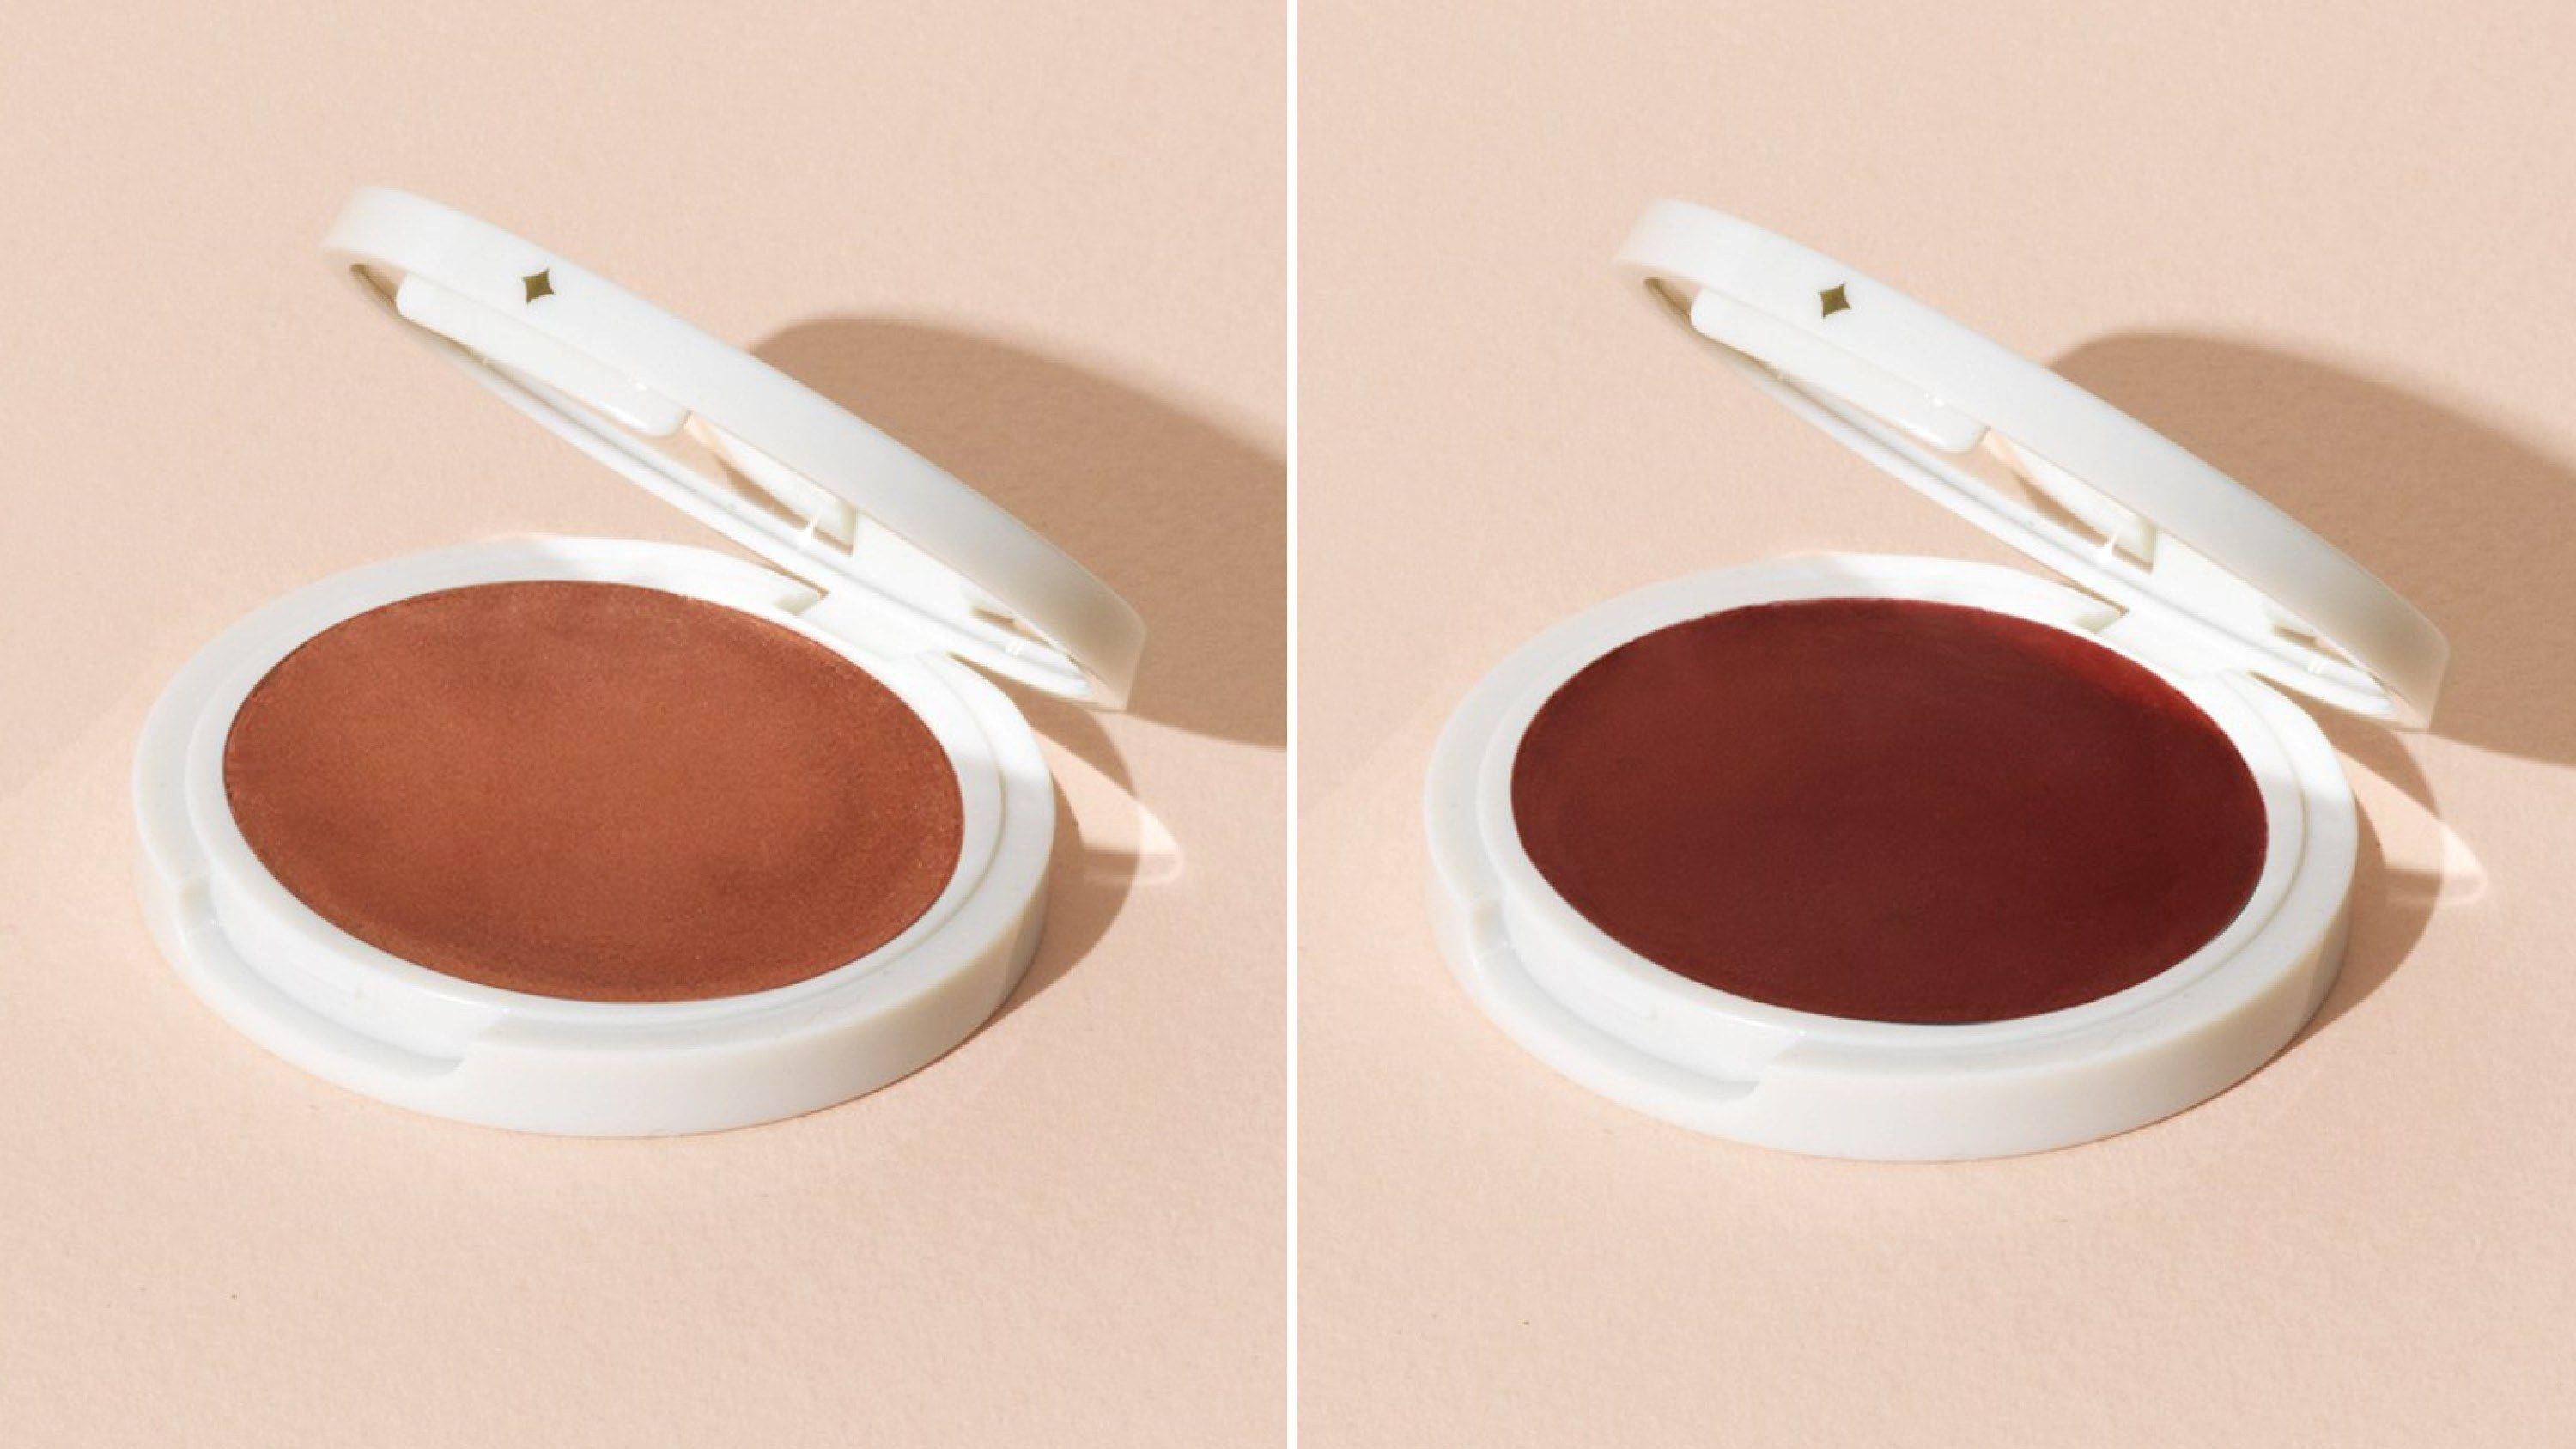 These New Eye Tints Are Basically Makeup For Dummies